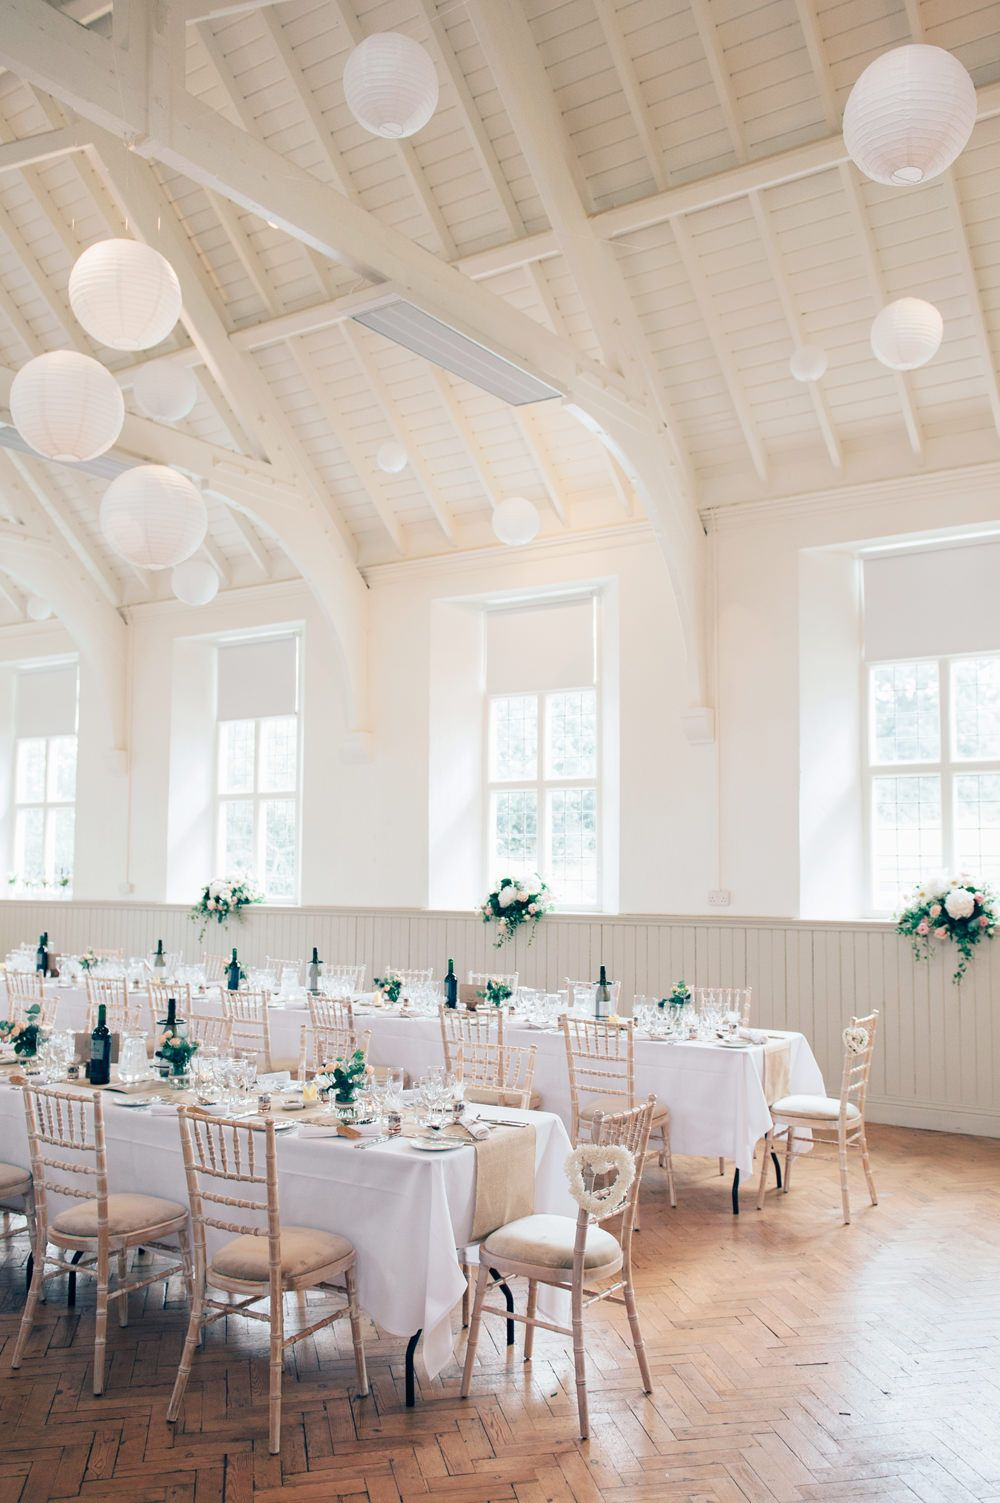 10 Ways To Have A Beautiful Budget Wedding Wedding Venue